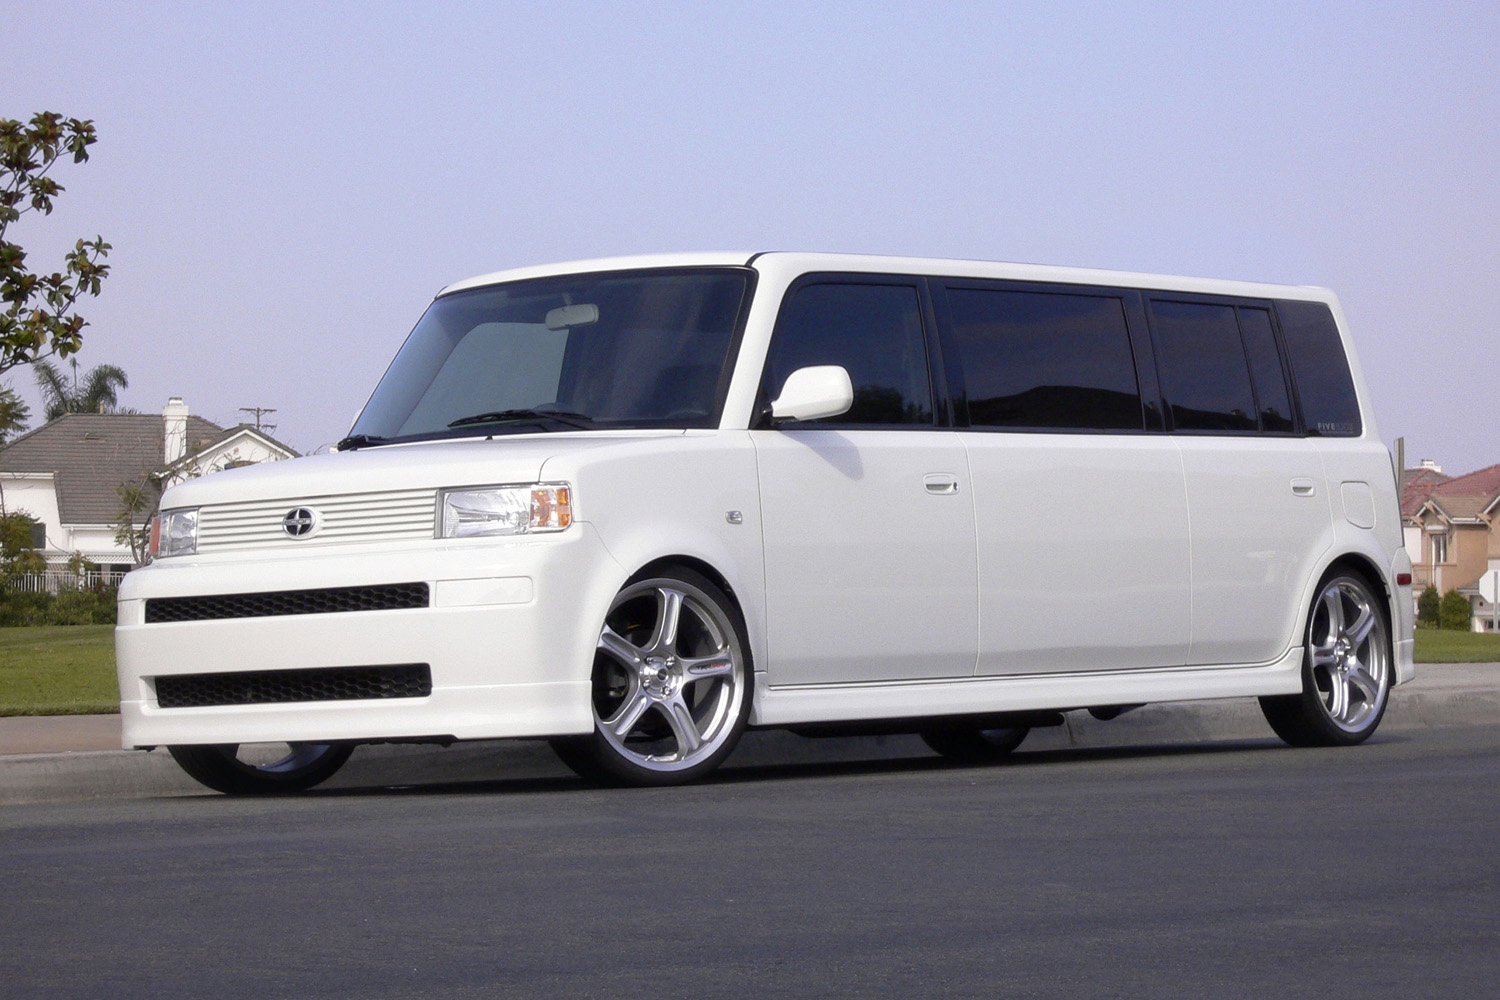 Scion Xb Limo Five Axis